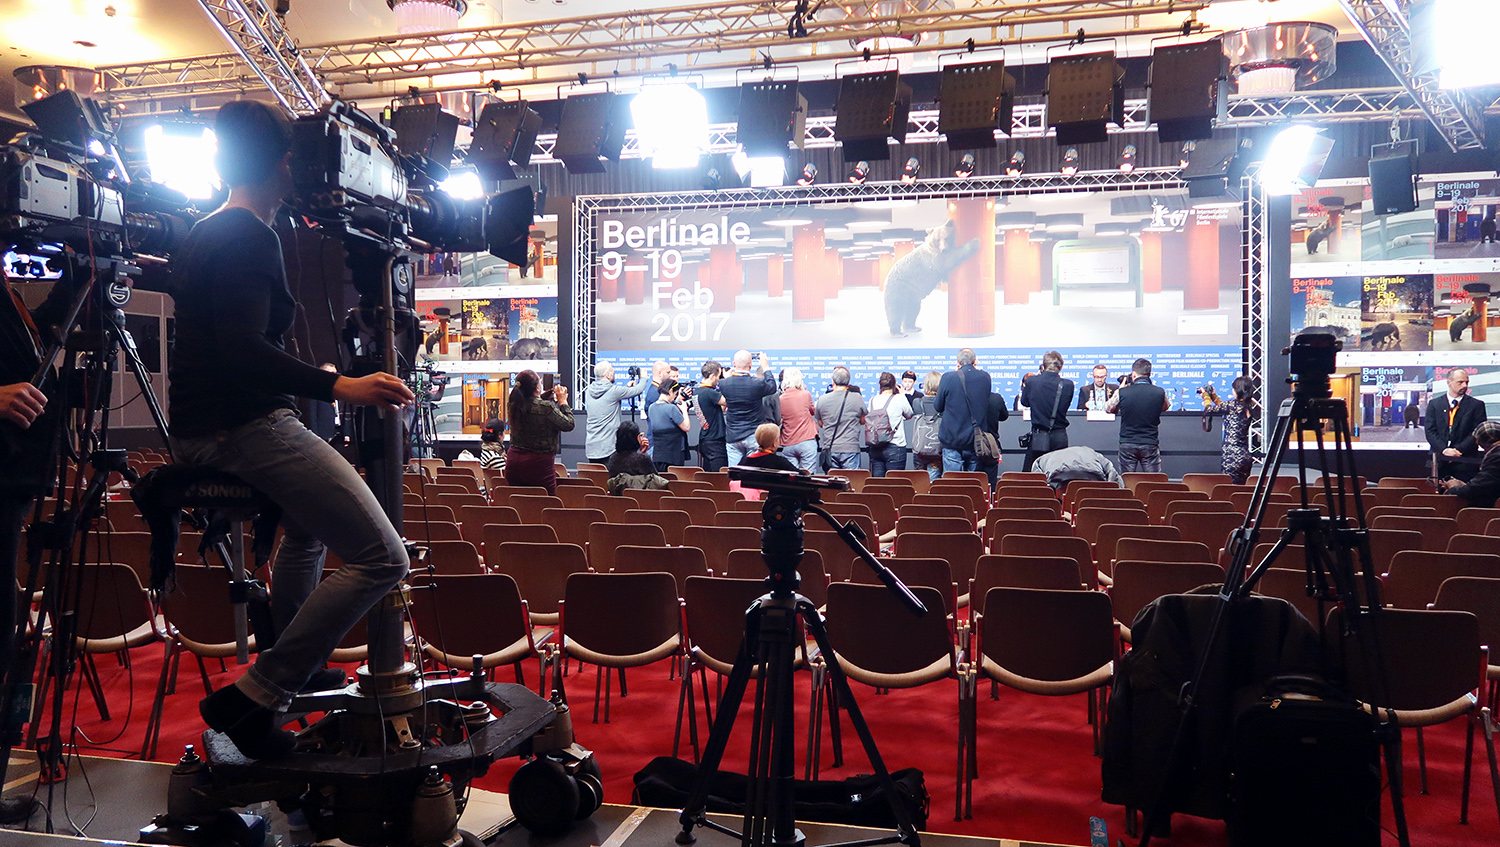 Pressekonferenz, Presse Center, Berlinale, 67, Berlin, Hinter den Kulissen, Lifestyleblog, Advanceyourstyle, Youtube